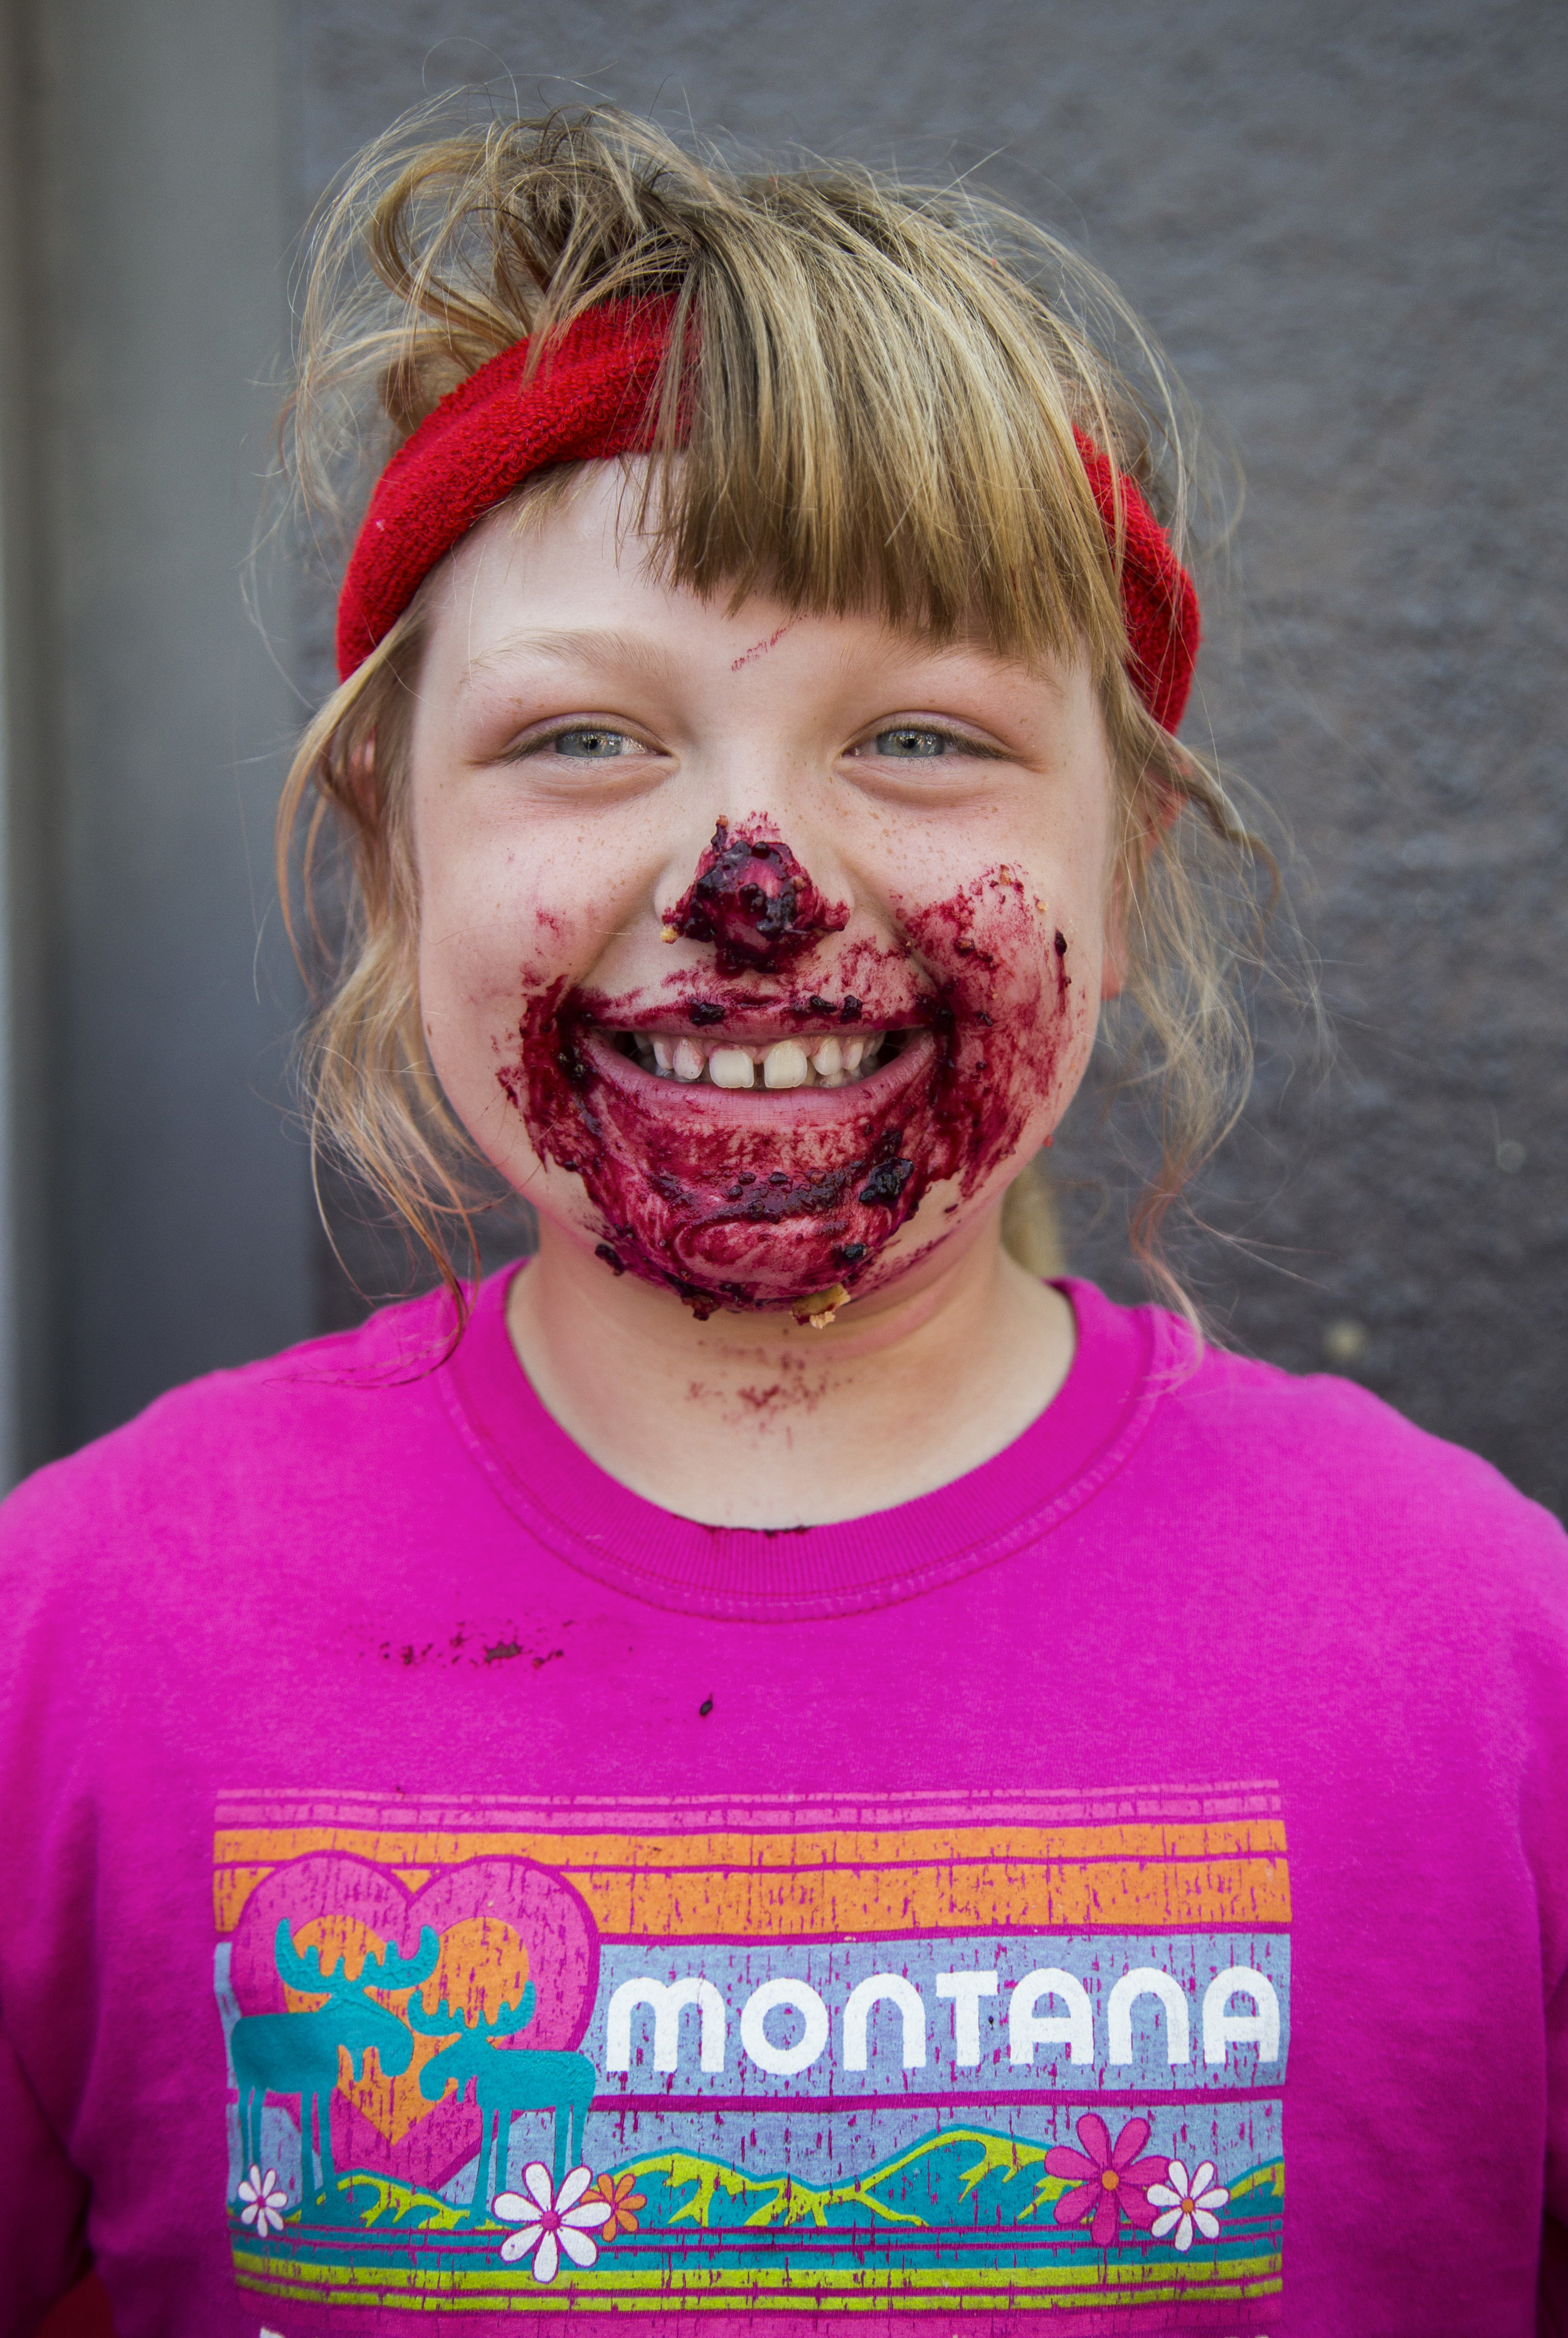 Samantha Redman, 9, one of the Snohomish Pie Company pie eating contest winners during Kla Ha Ya Days on Saturday, July 21, 2018 in Snohomish, Wash.